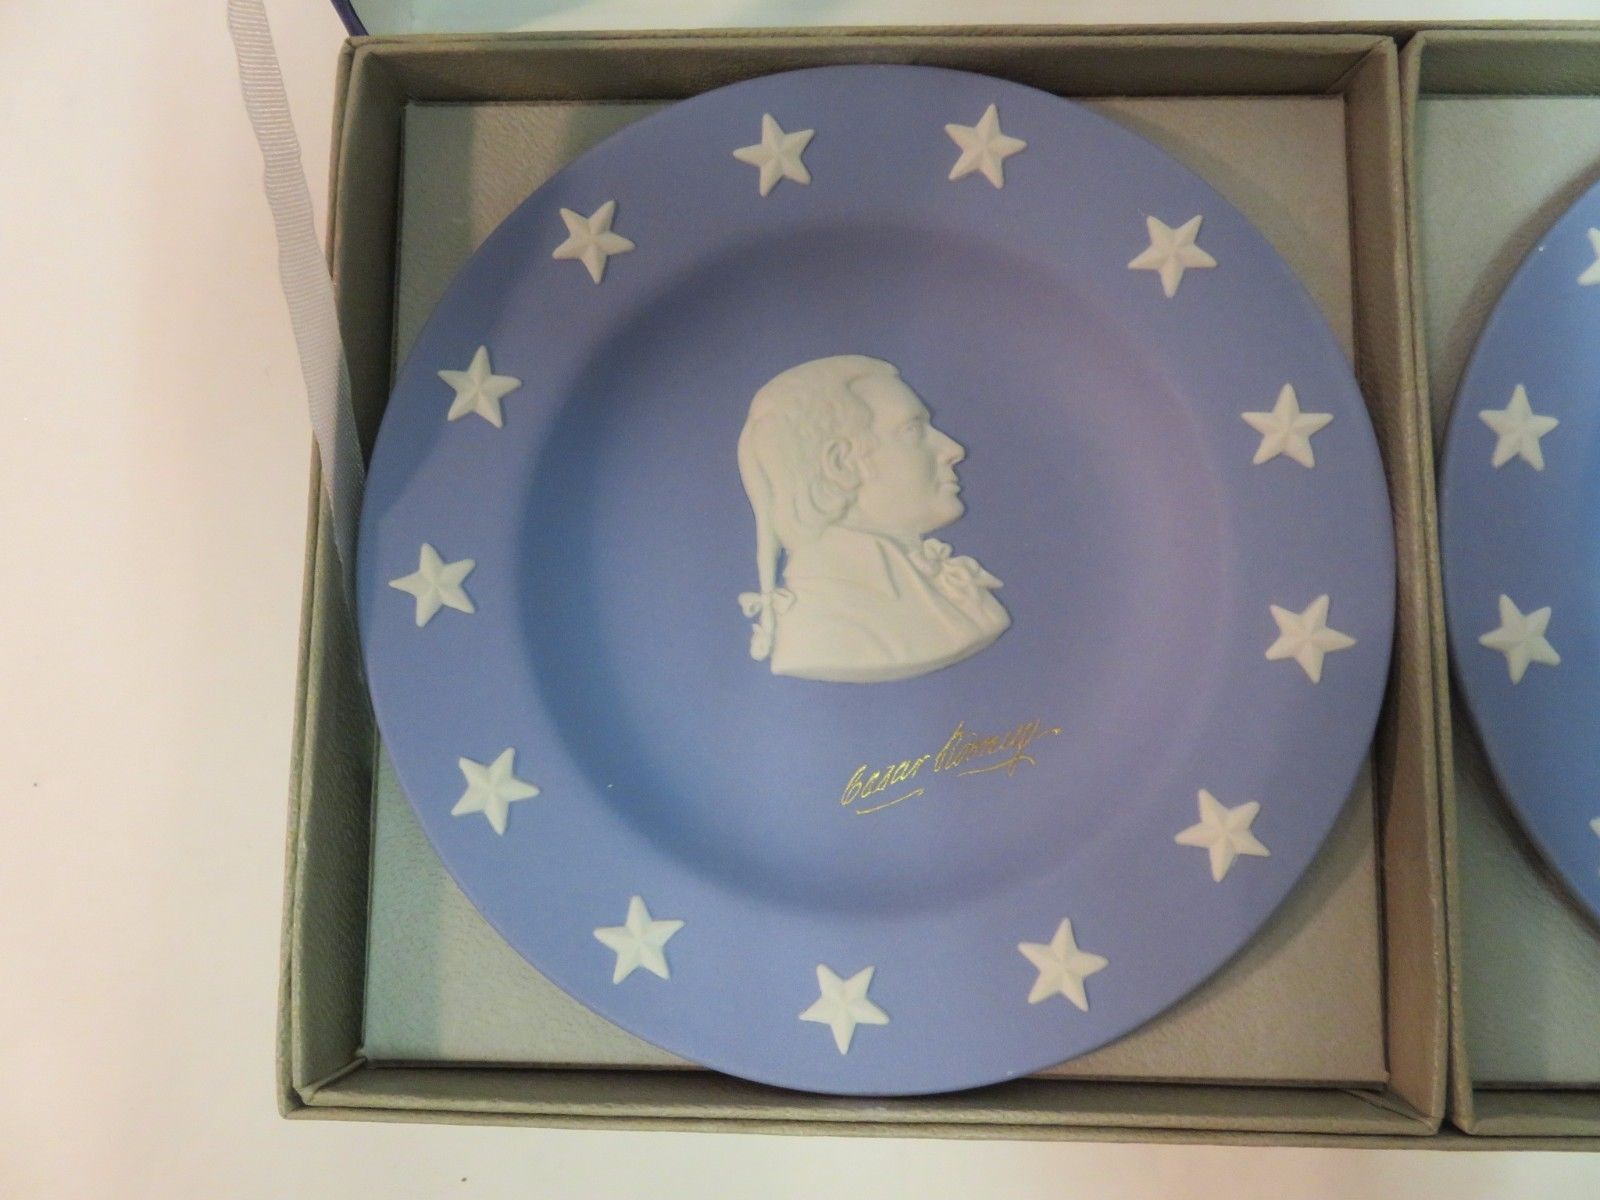 Wedgwood Jasper Blue Compotiers State Seal Series Delaware Small Plates in Box image 2